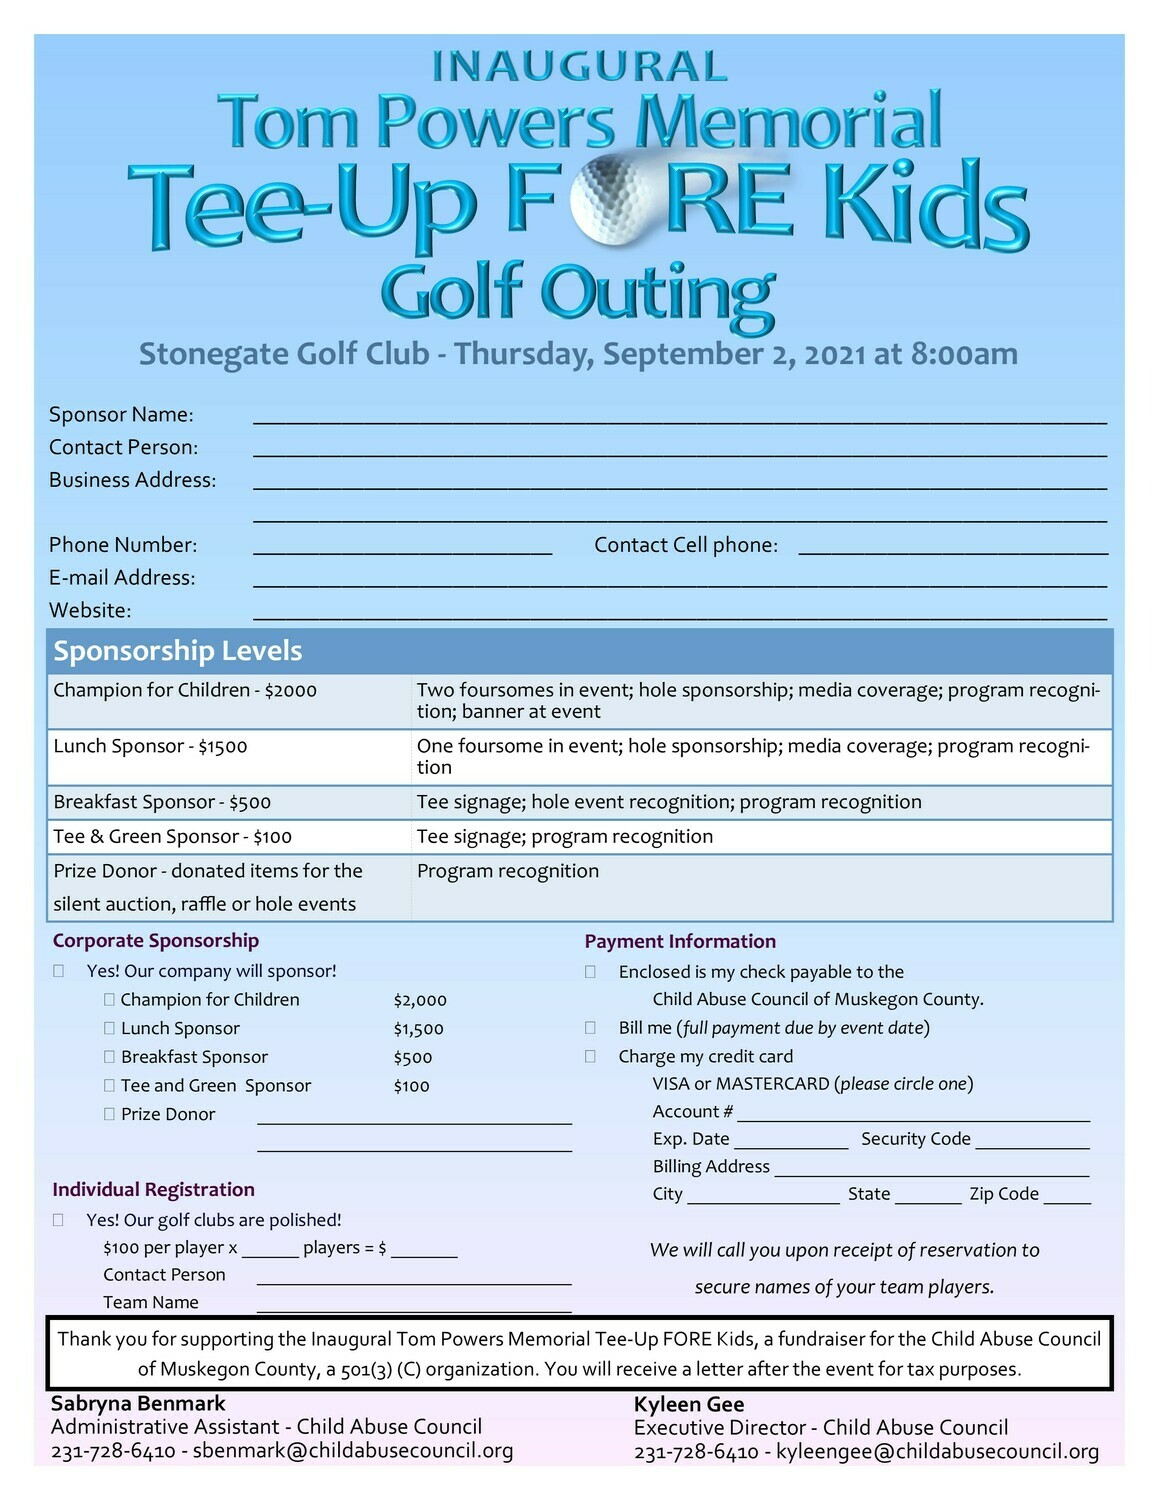 Tom Powers Memorial Tee Up FORE Kids Golf Outing Sponsorship